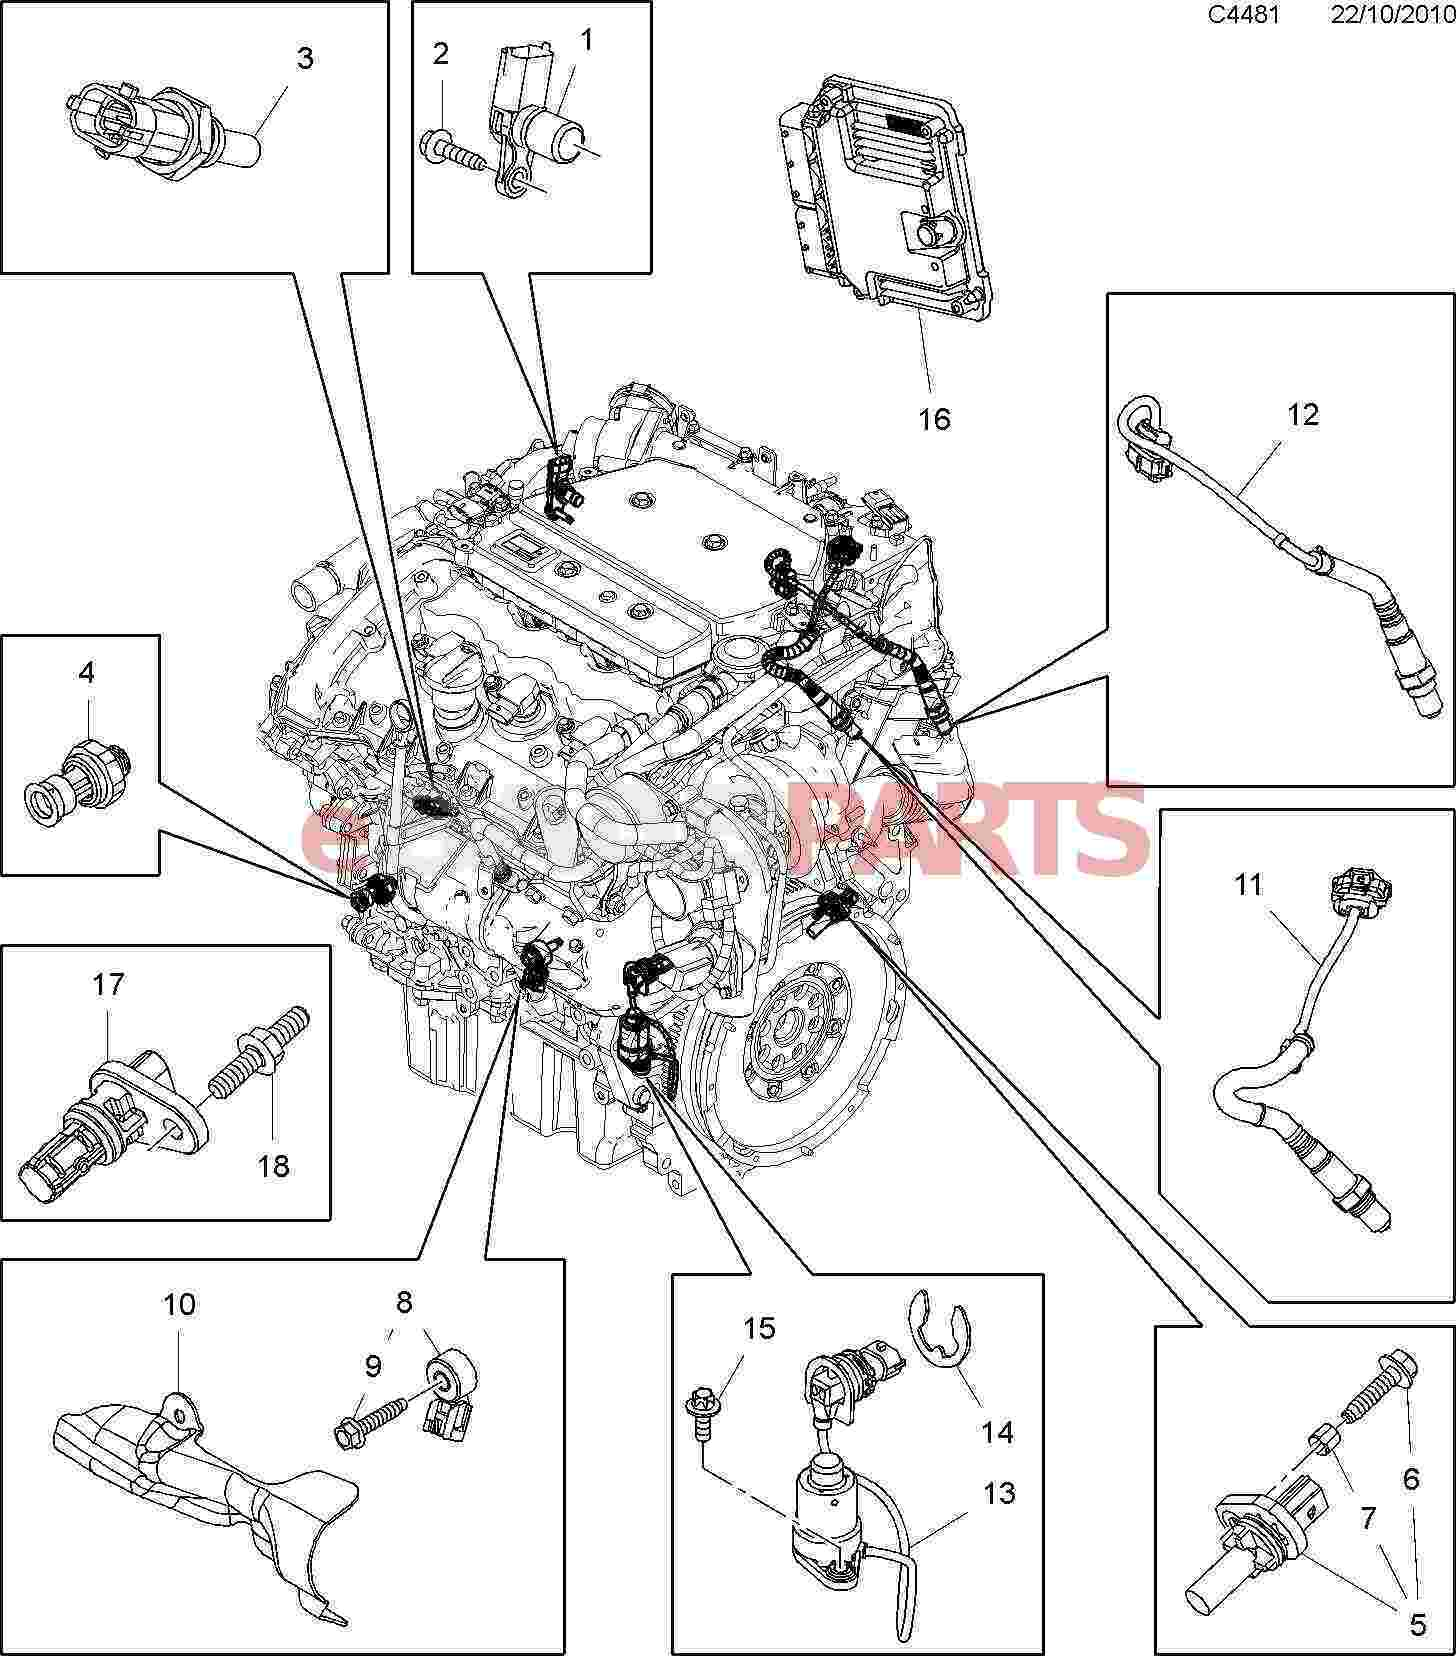 Saab Oil Diagram moreover 2005 Hyundai Accent Engine Diagram additionally Saab 9 3 Turbo Engine Diagram moreover 2002 Jeep Liberty Under Hood Fuse Box additionally 2009 Toyota Corolla Serpentine Belt Diagram. on 2002 saab 9 5 engine diagram